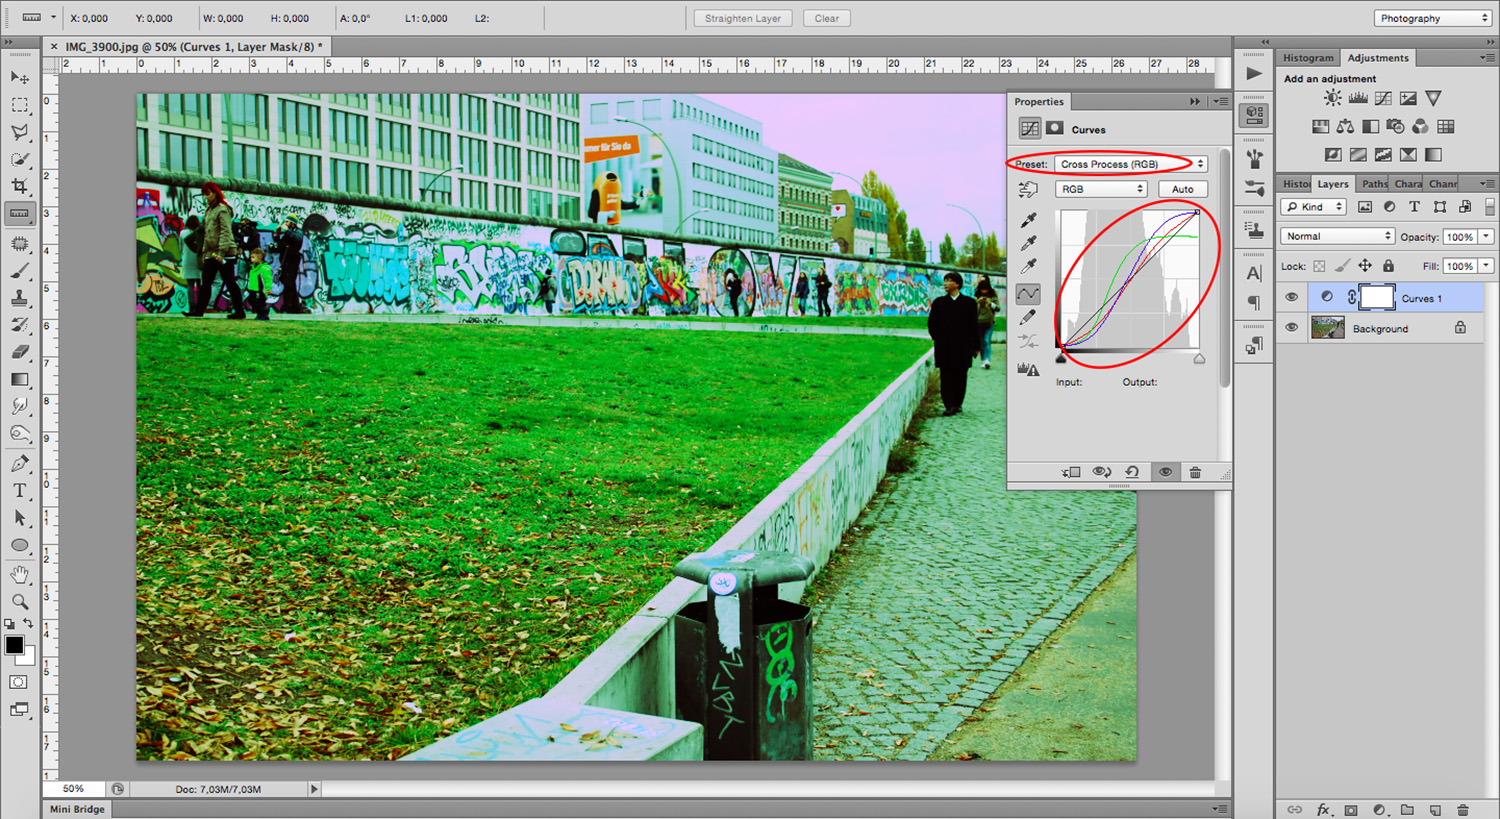 Graph - How To Mimic a Cross-Processing Effect in Photoshop